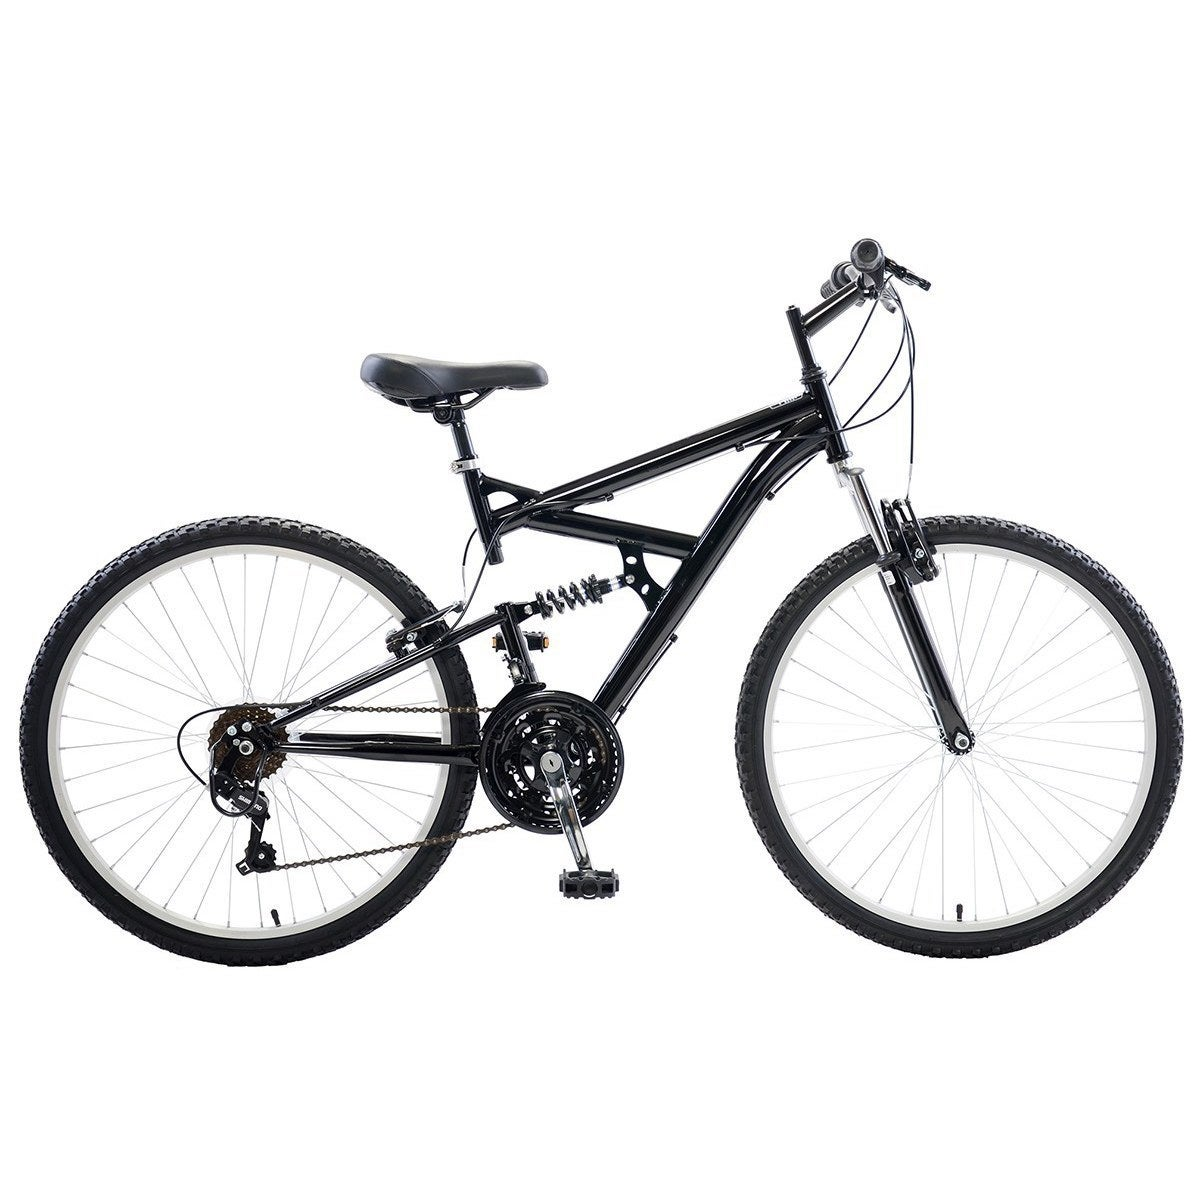 Cycle Force Dual Suspension 26-inch Wheels 18-inch Frame ...